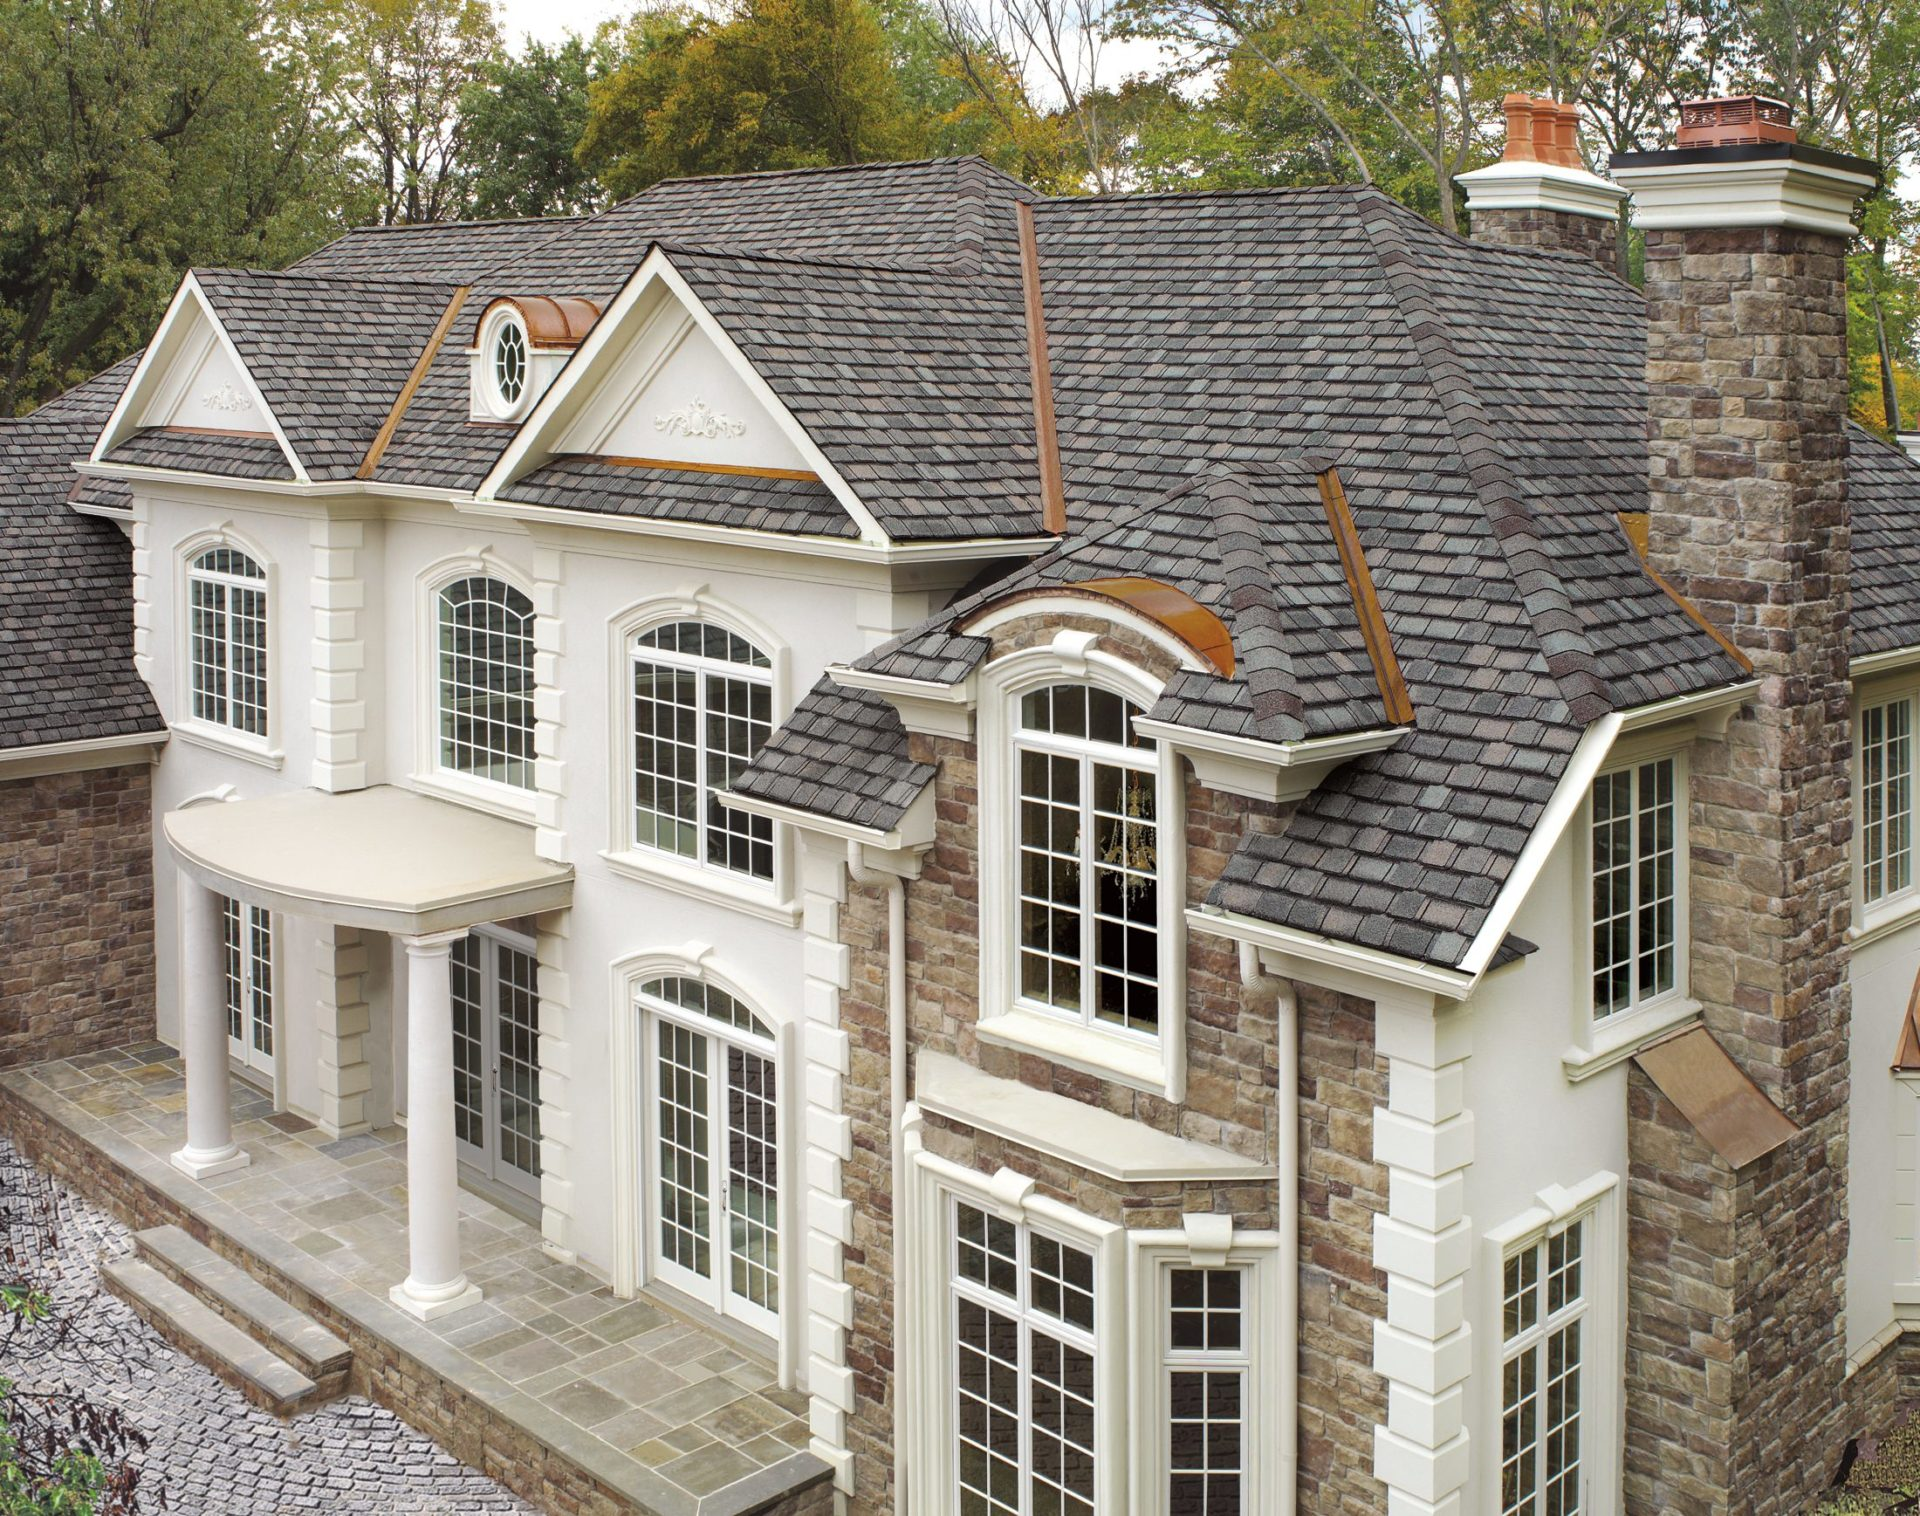 Gaf Camelot Williamsburg Slate Brinkmann Quality Roofing